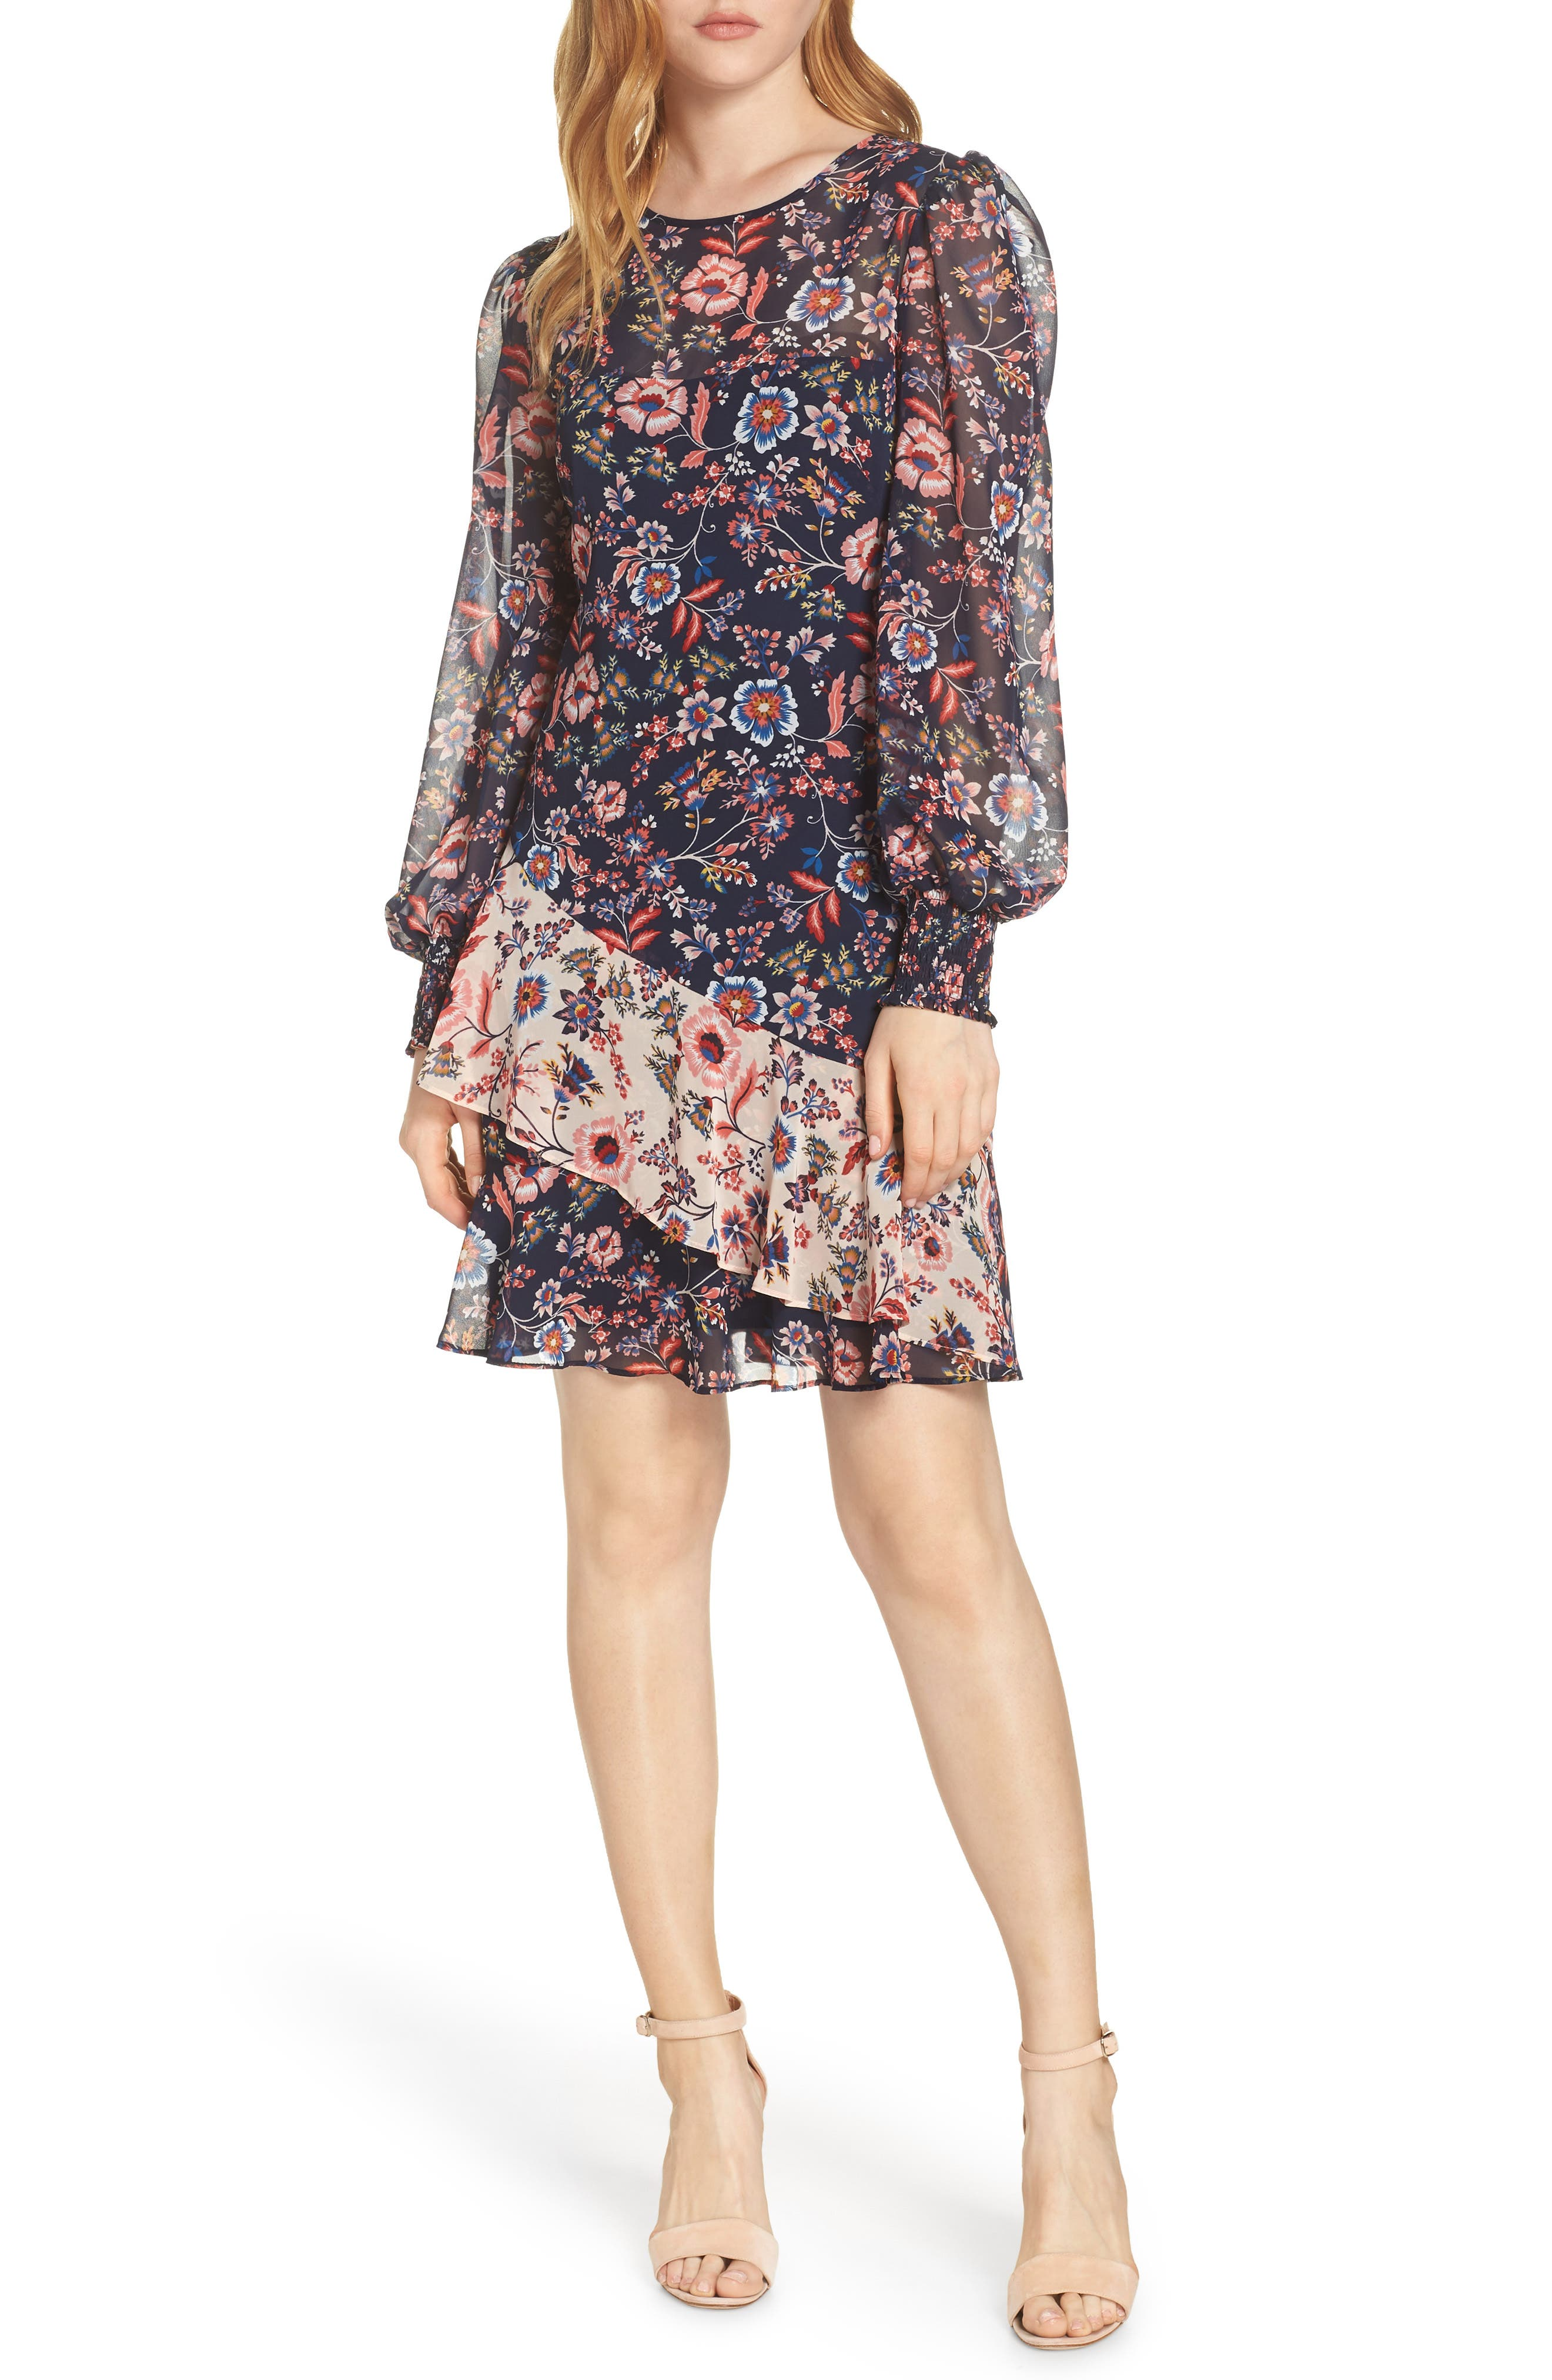 ELIZA J Floral Print Contrast Ruffle Chiffon Dress, Main, color, NAVY MULTI